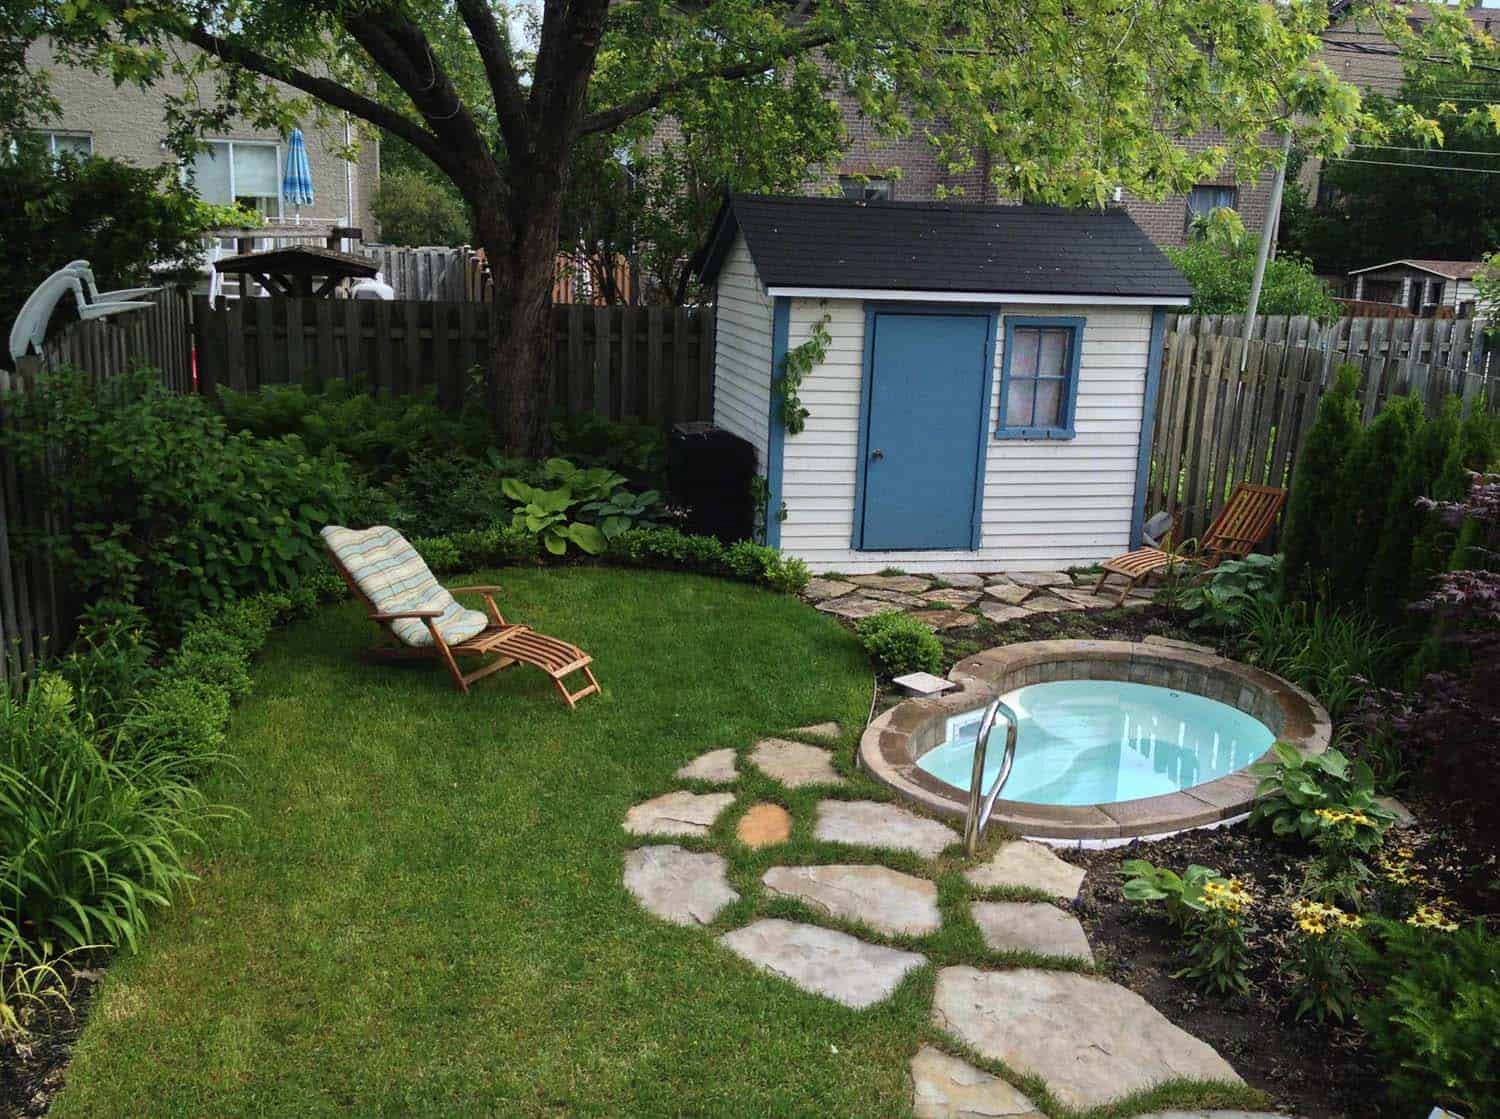 40 Outstanding Hot Tub Ideas To Create A Backyard Oasis